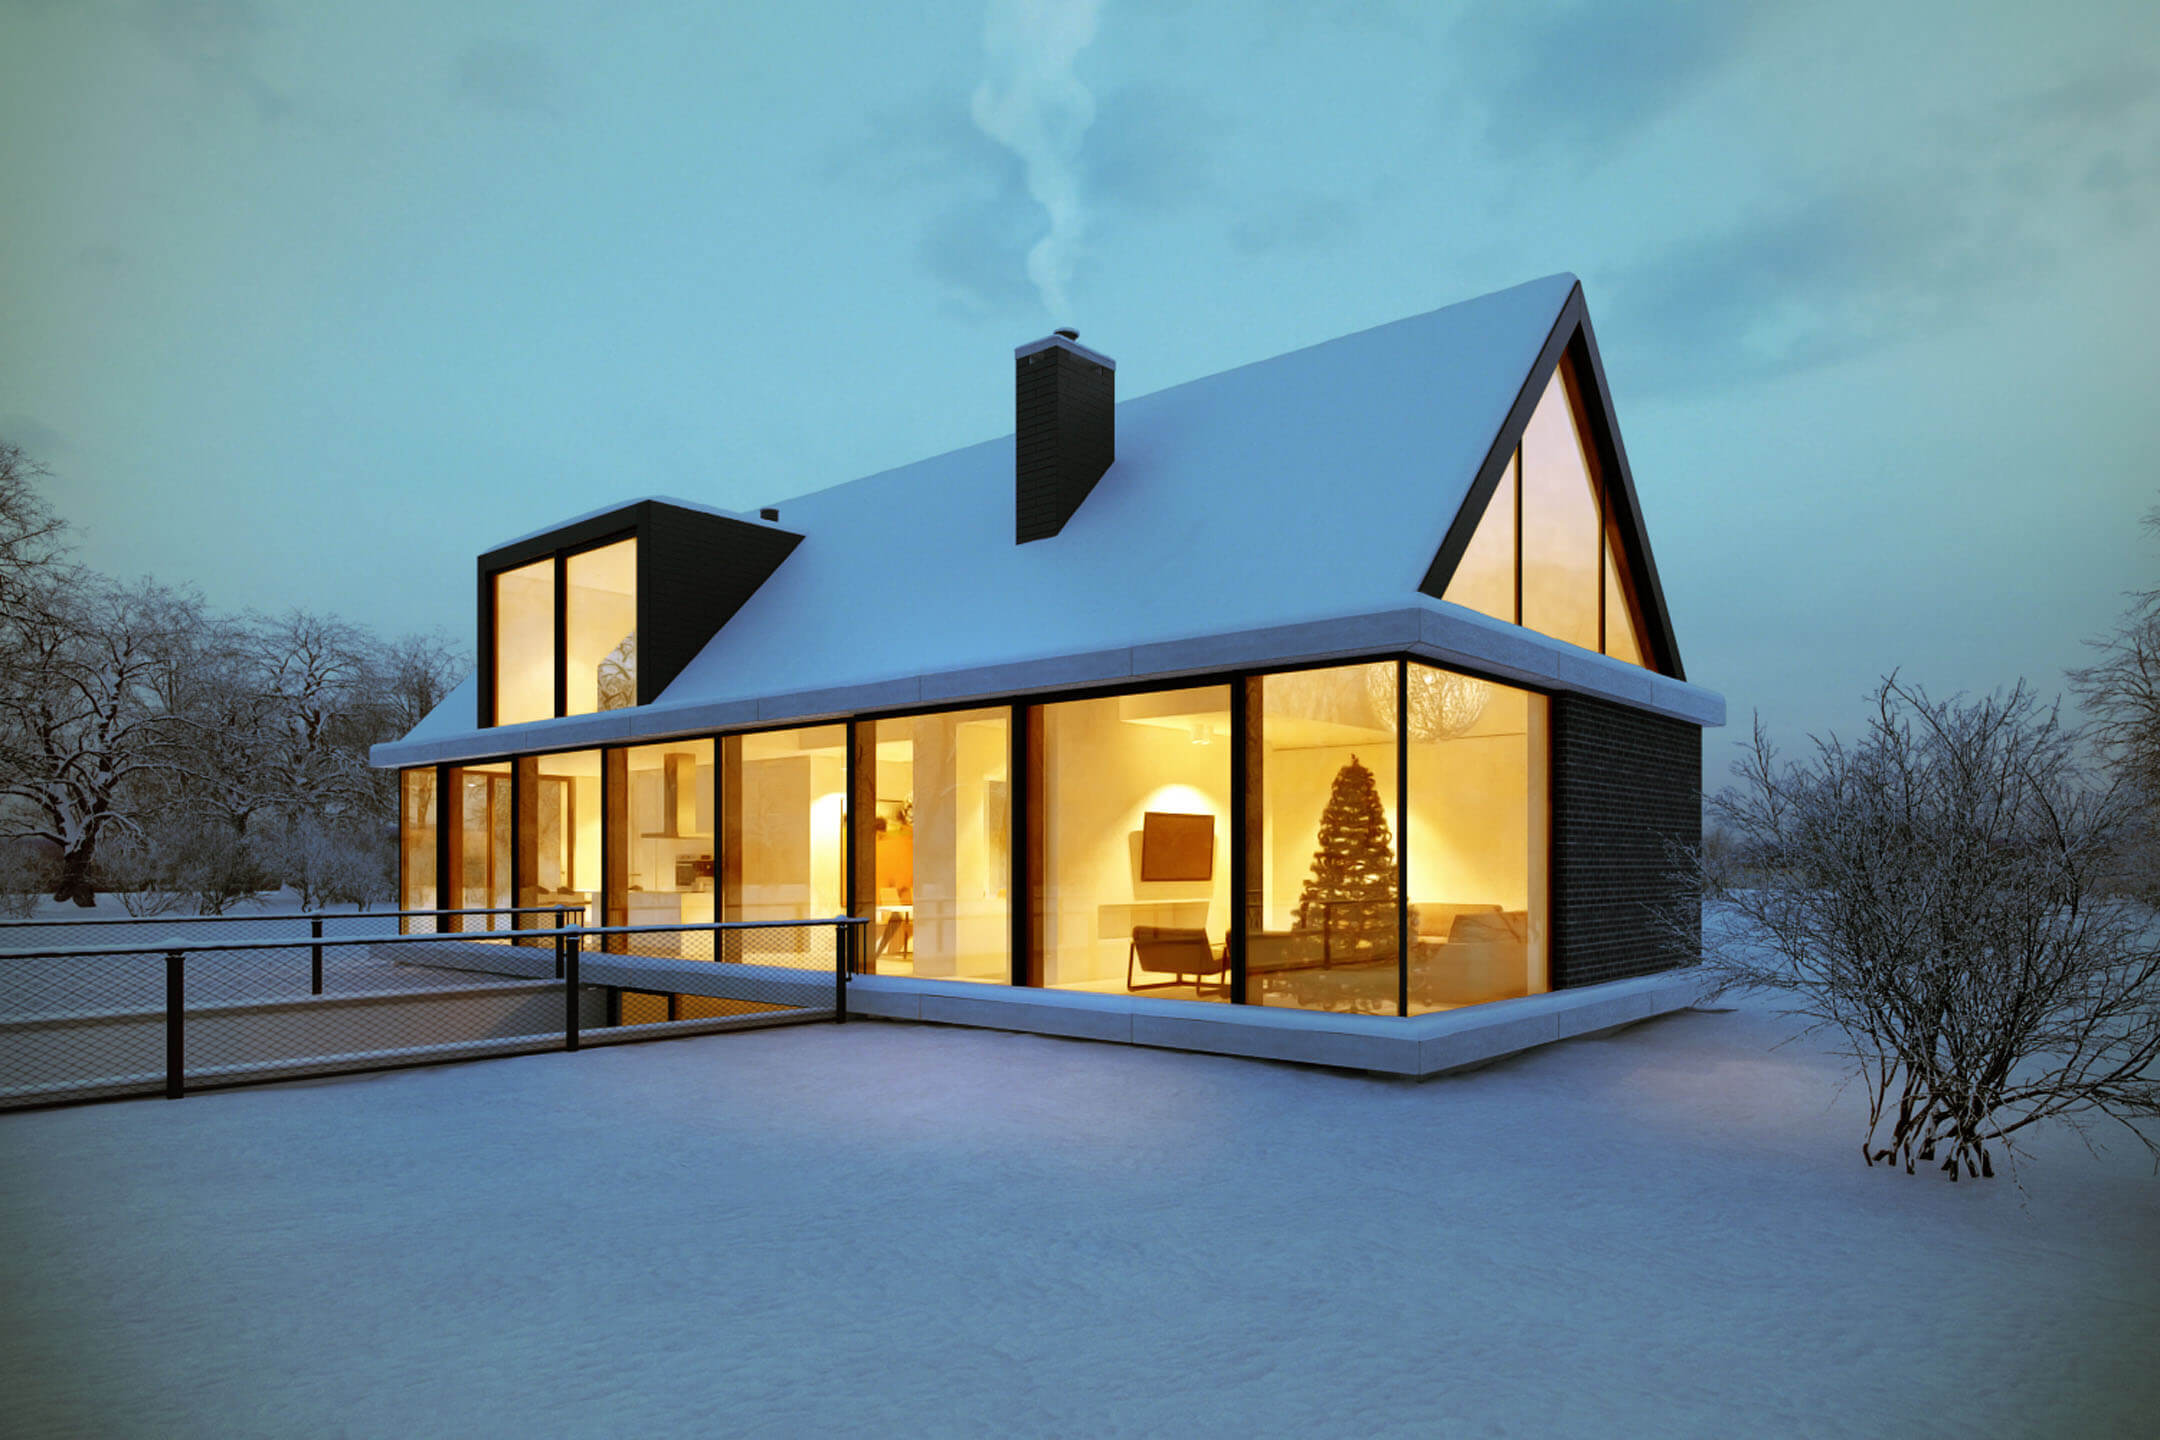 3D Rendering Showing a Small Cottage in Wintertime